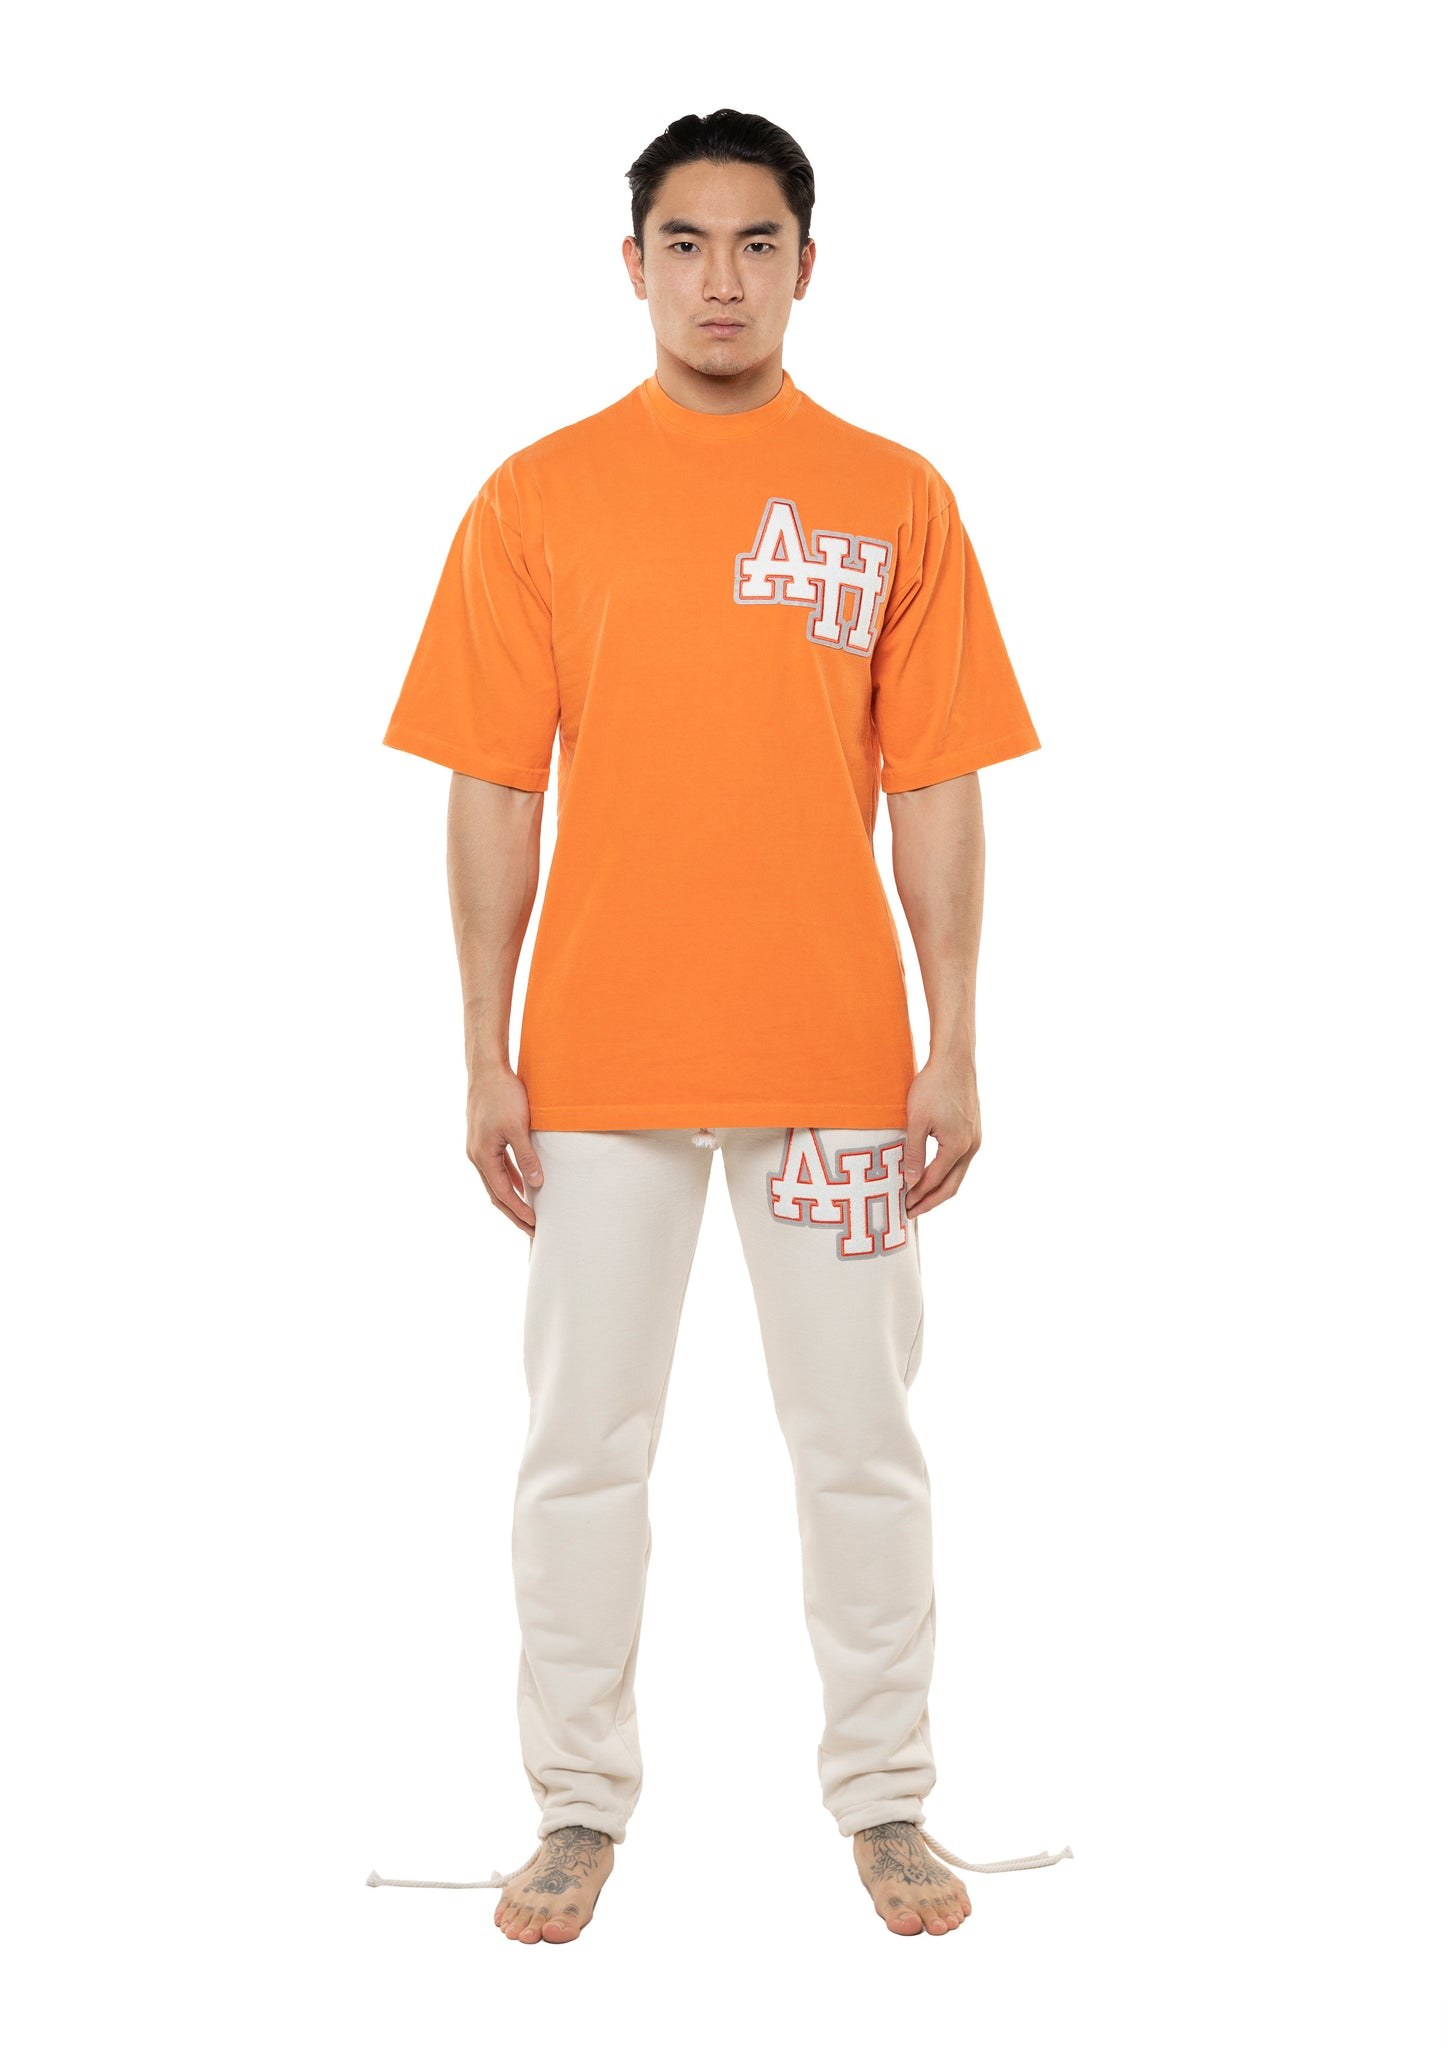 AH COLLEGE TSHIRT - WASHED ORANGE